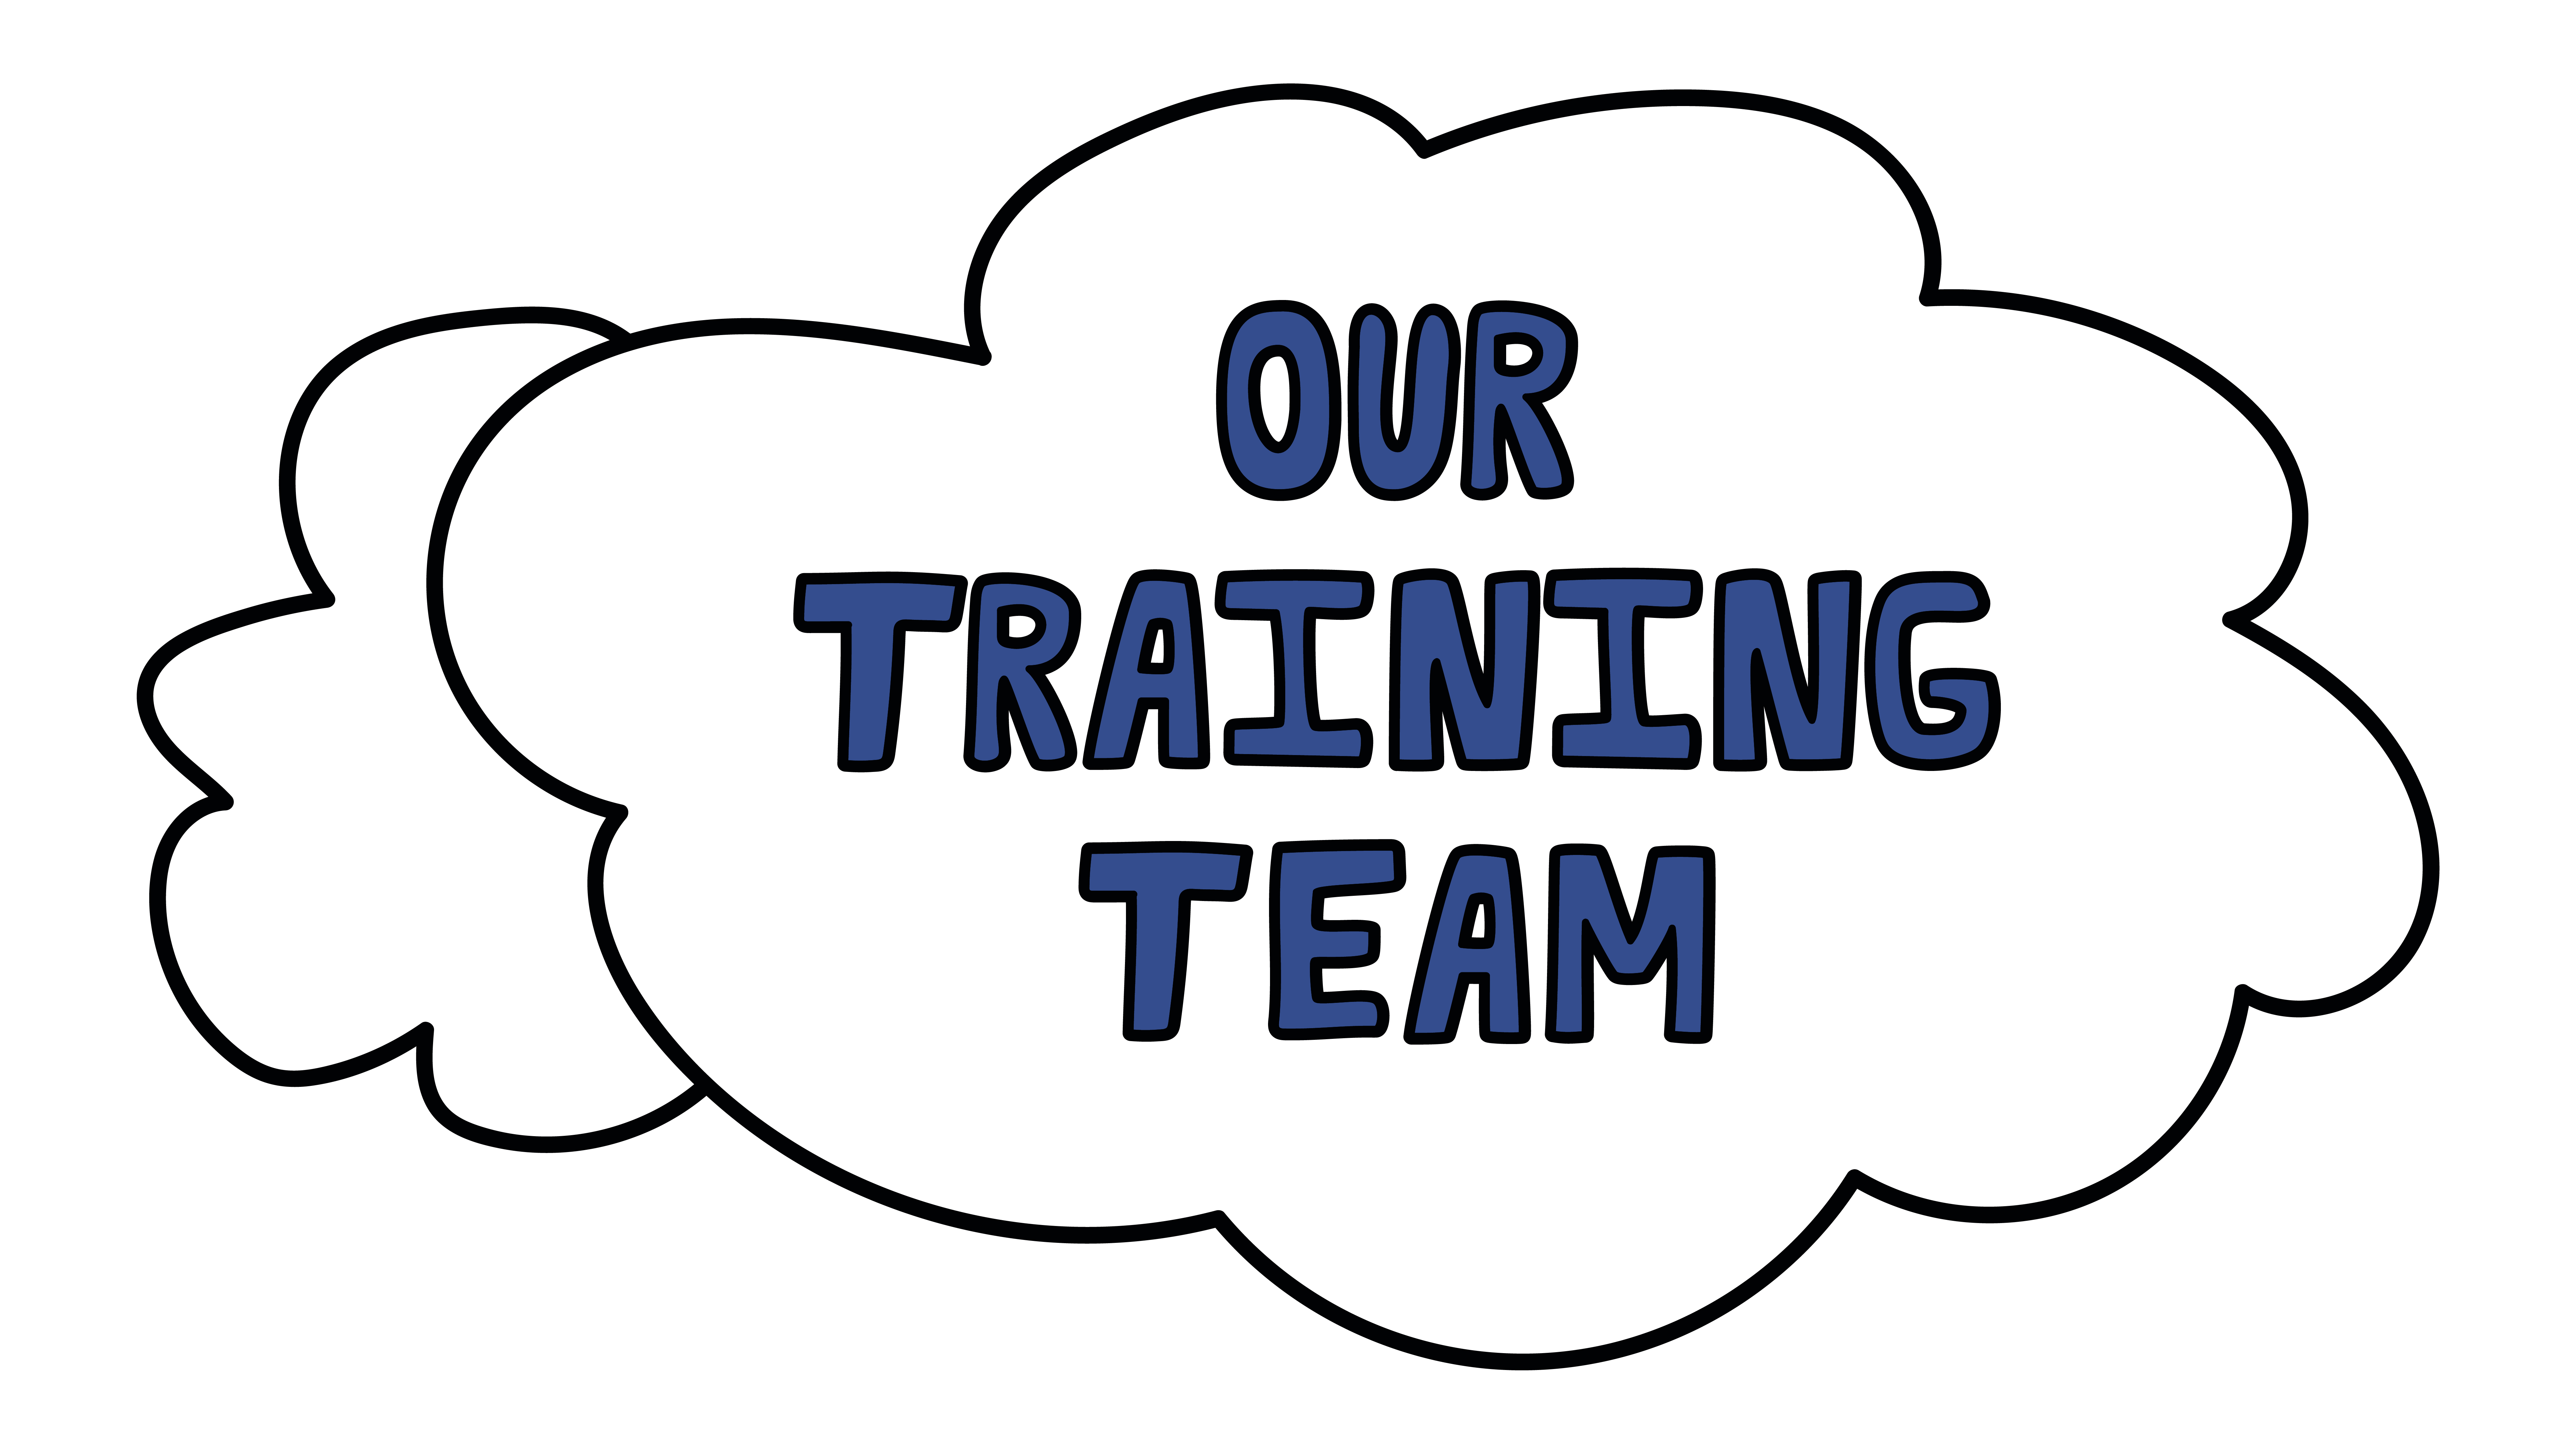 Our Training Team